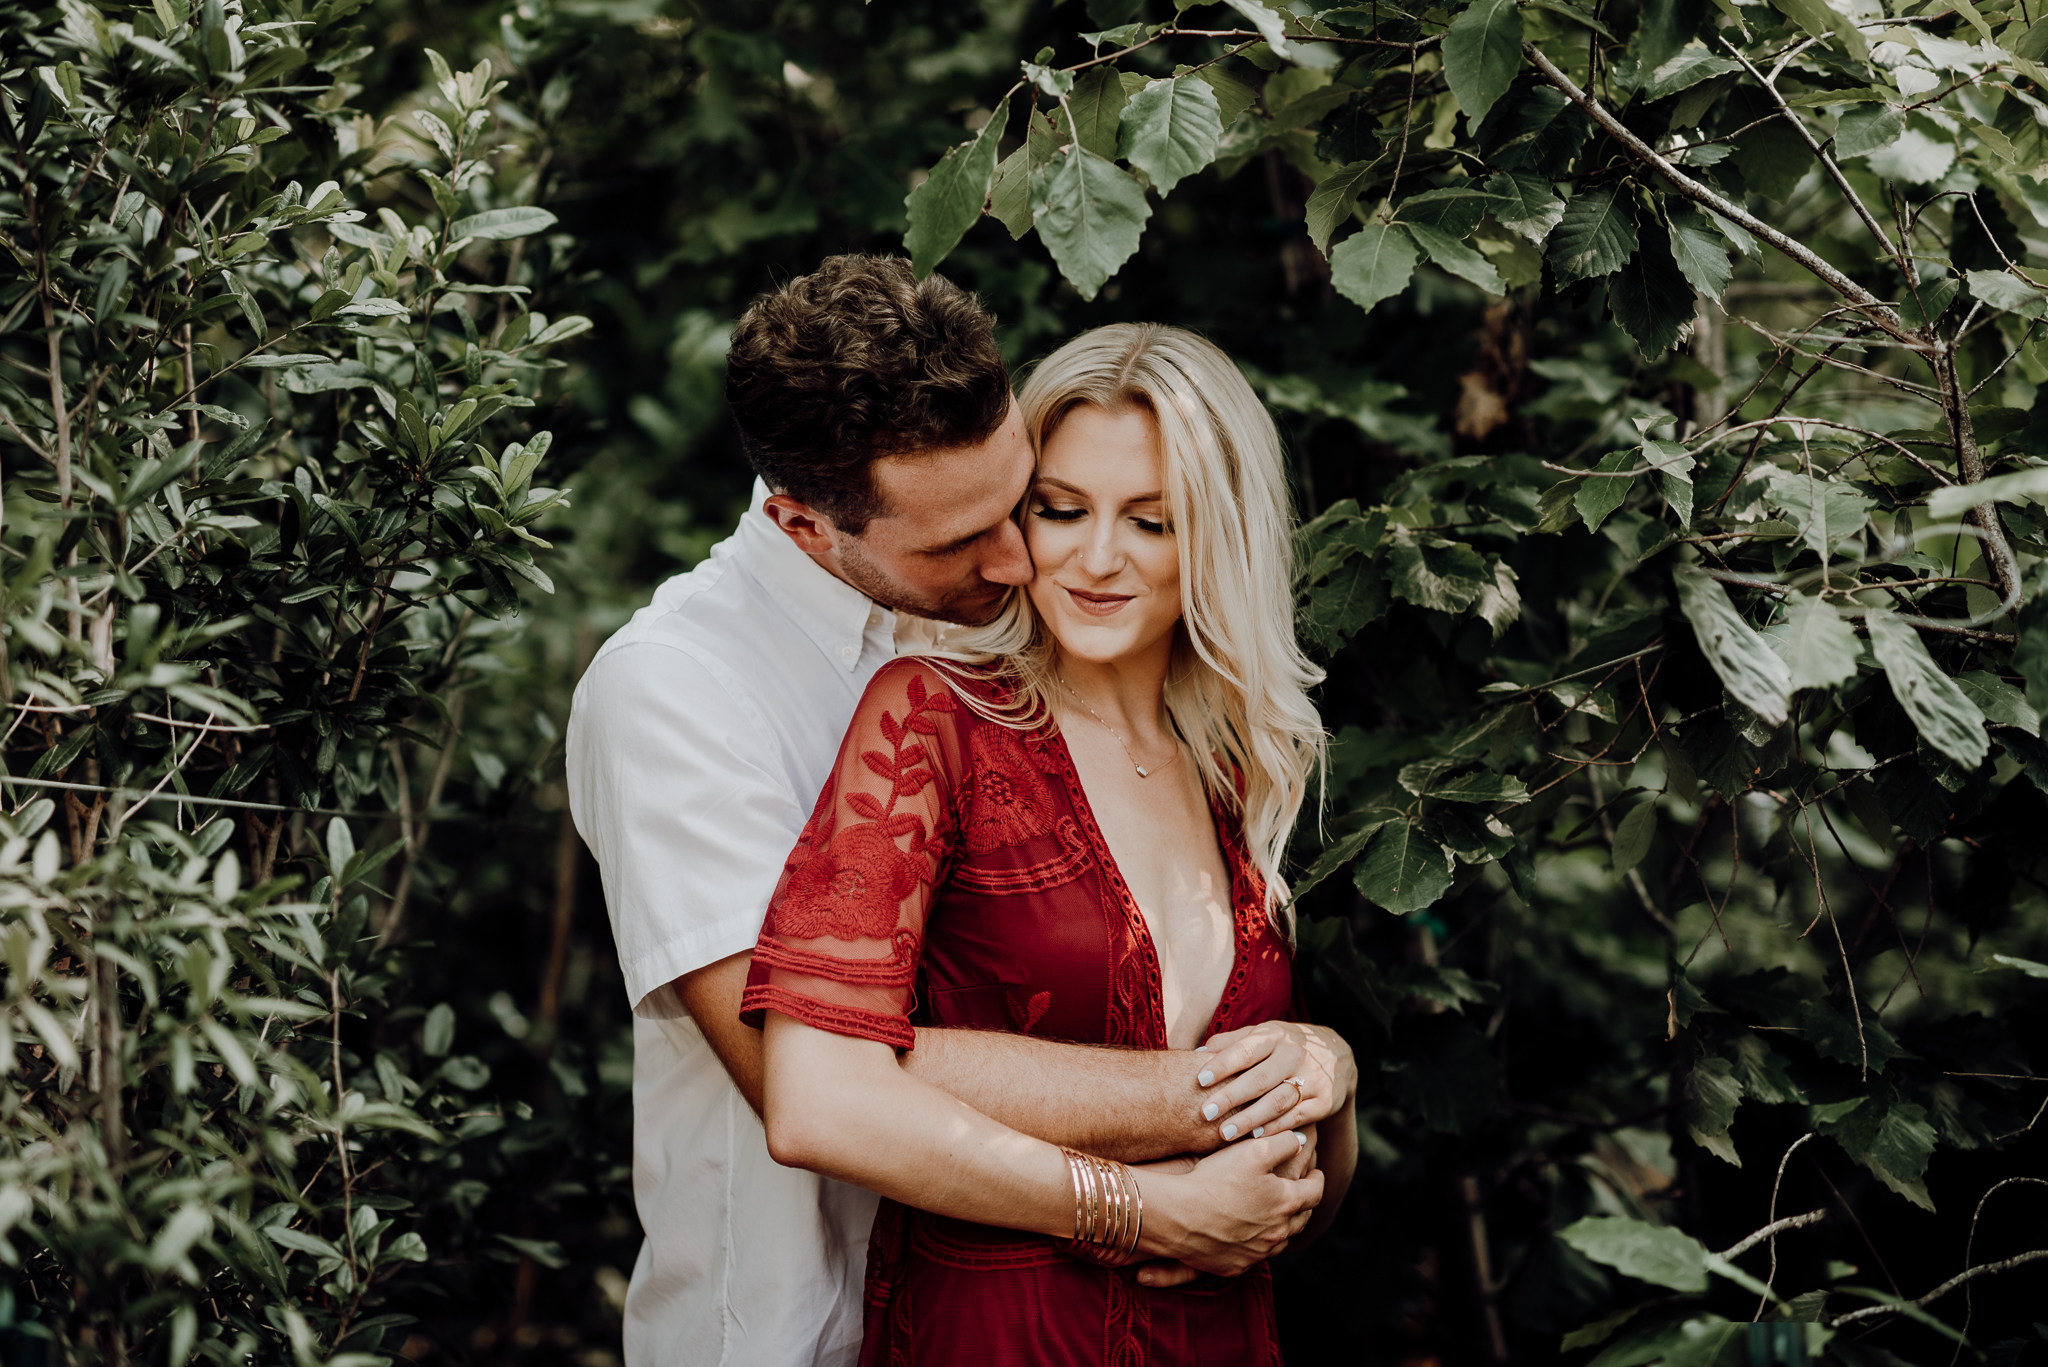 kristen giles photography | texas wedding photographer - austin plant shop engagement session-18-blog.jpg